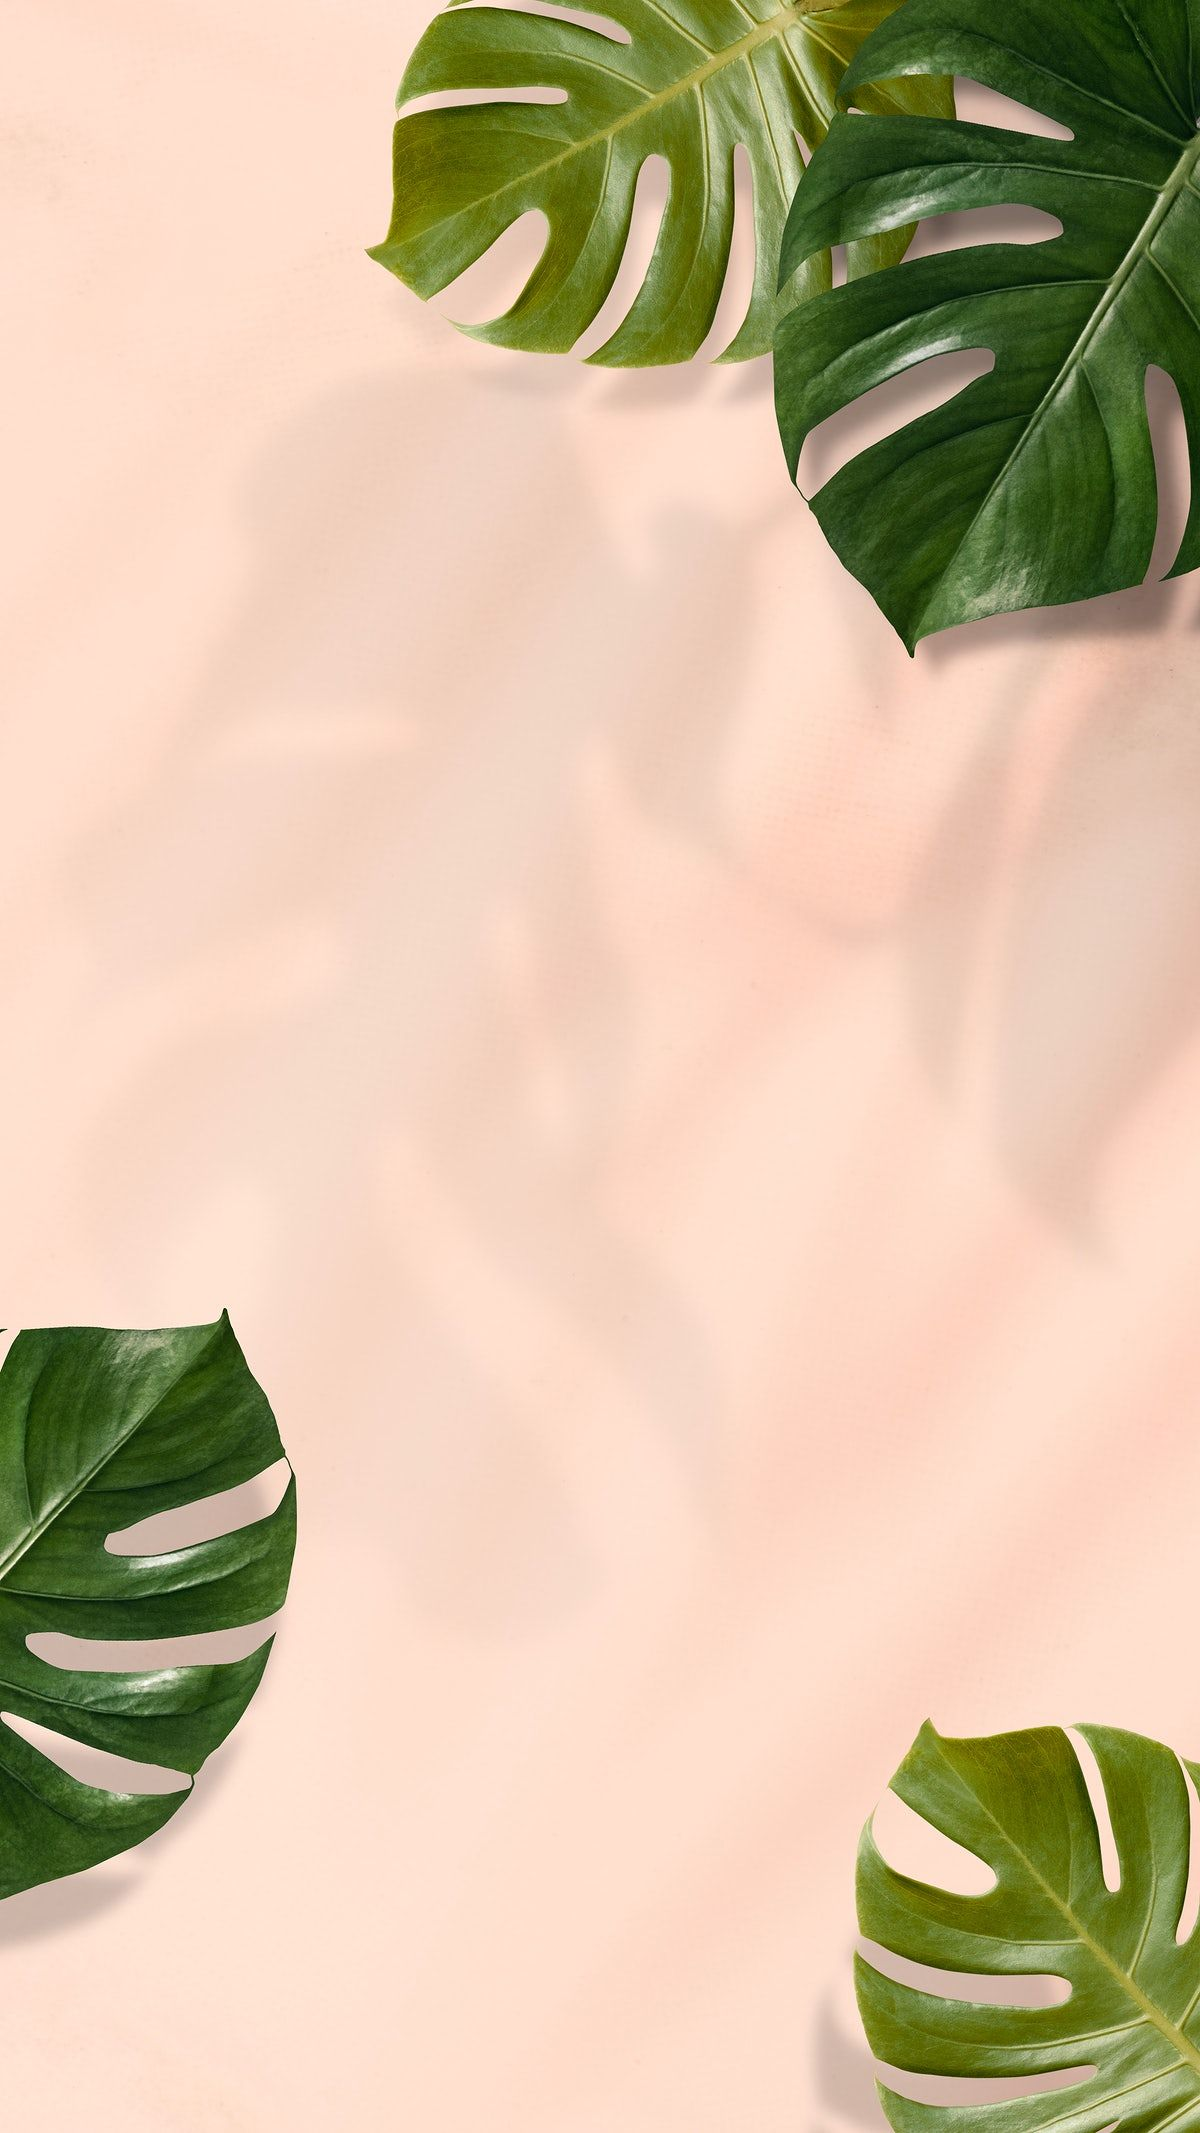 Download premium psd / image of Monstera leaves on pink background by Sasi about pink monstera, android wallpaper, backgrounds, blank space, and botanical 2441436